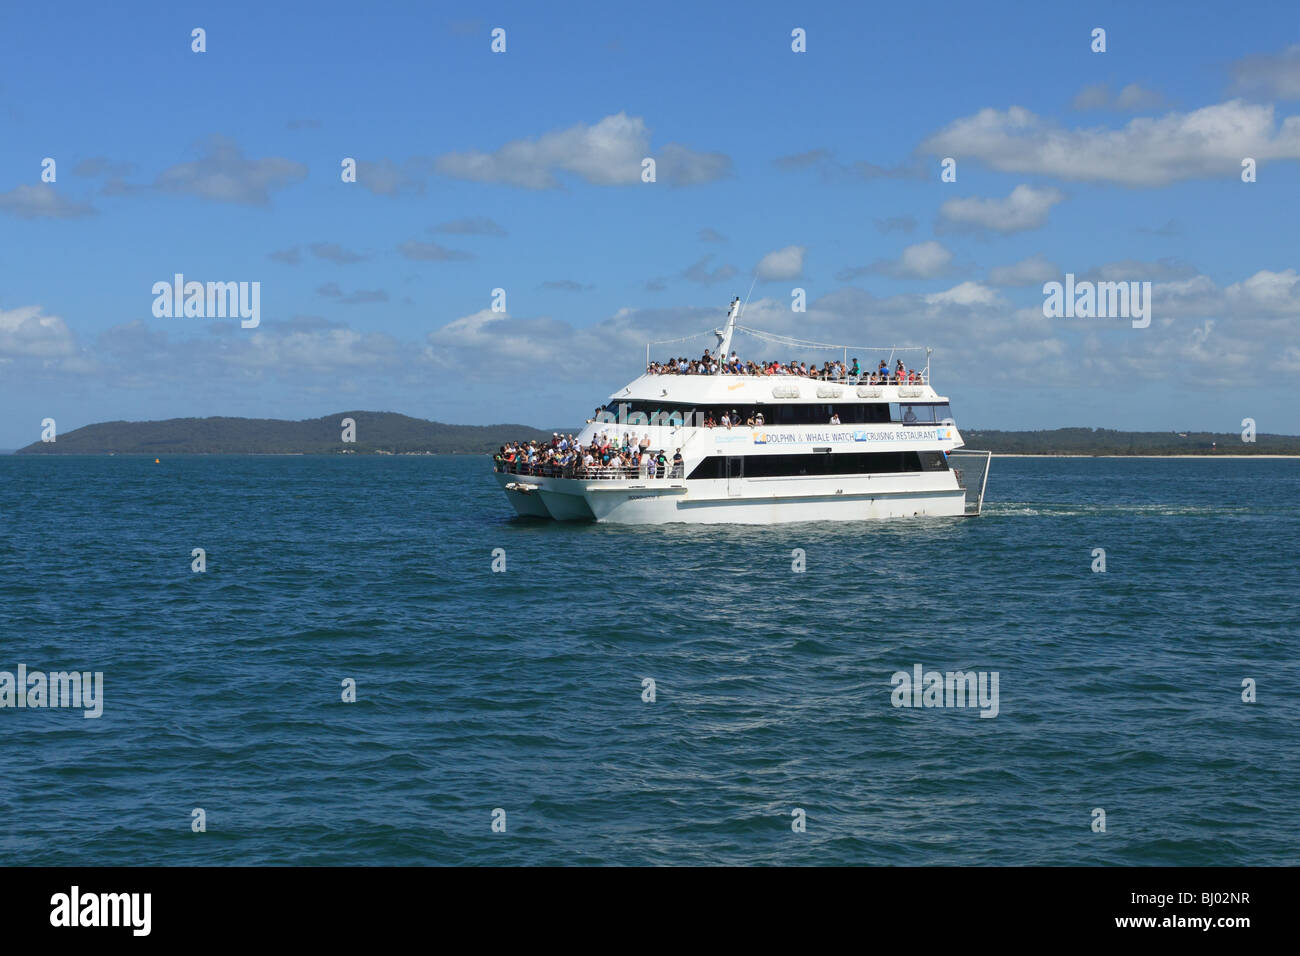 Dolphin watching boat, Port Stephens, NSW, Australia - Stock Image